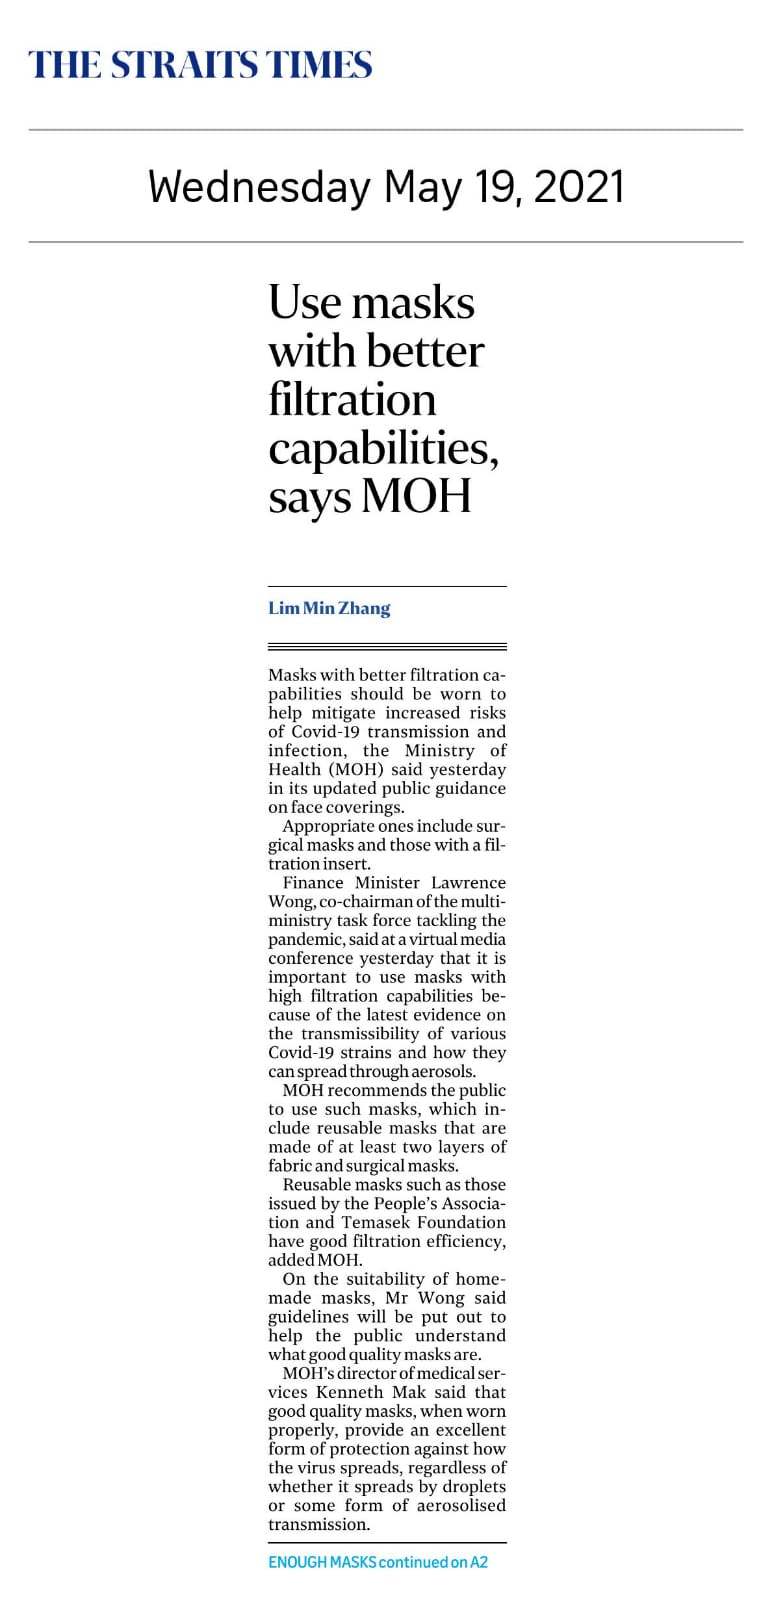 Use masks with better filtration capabilities, says MOH - Published in The Straits Times May 19, 2021